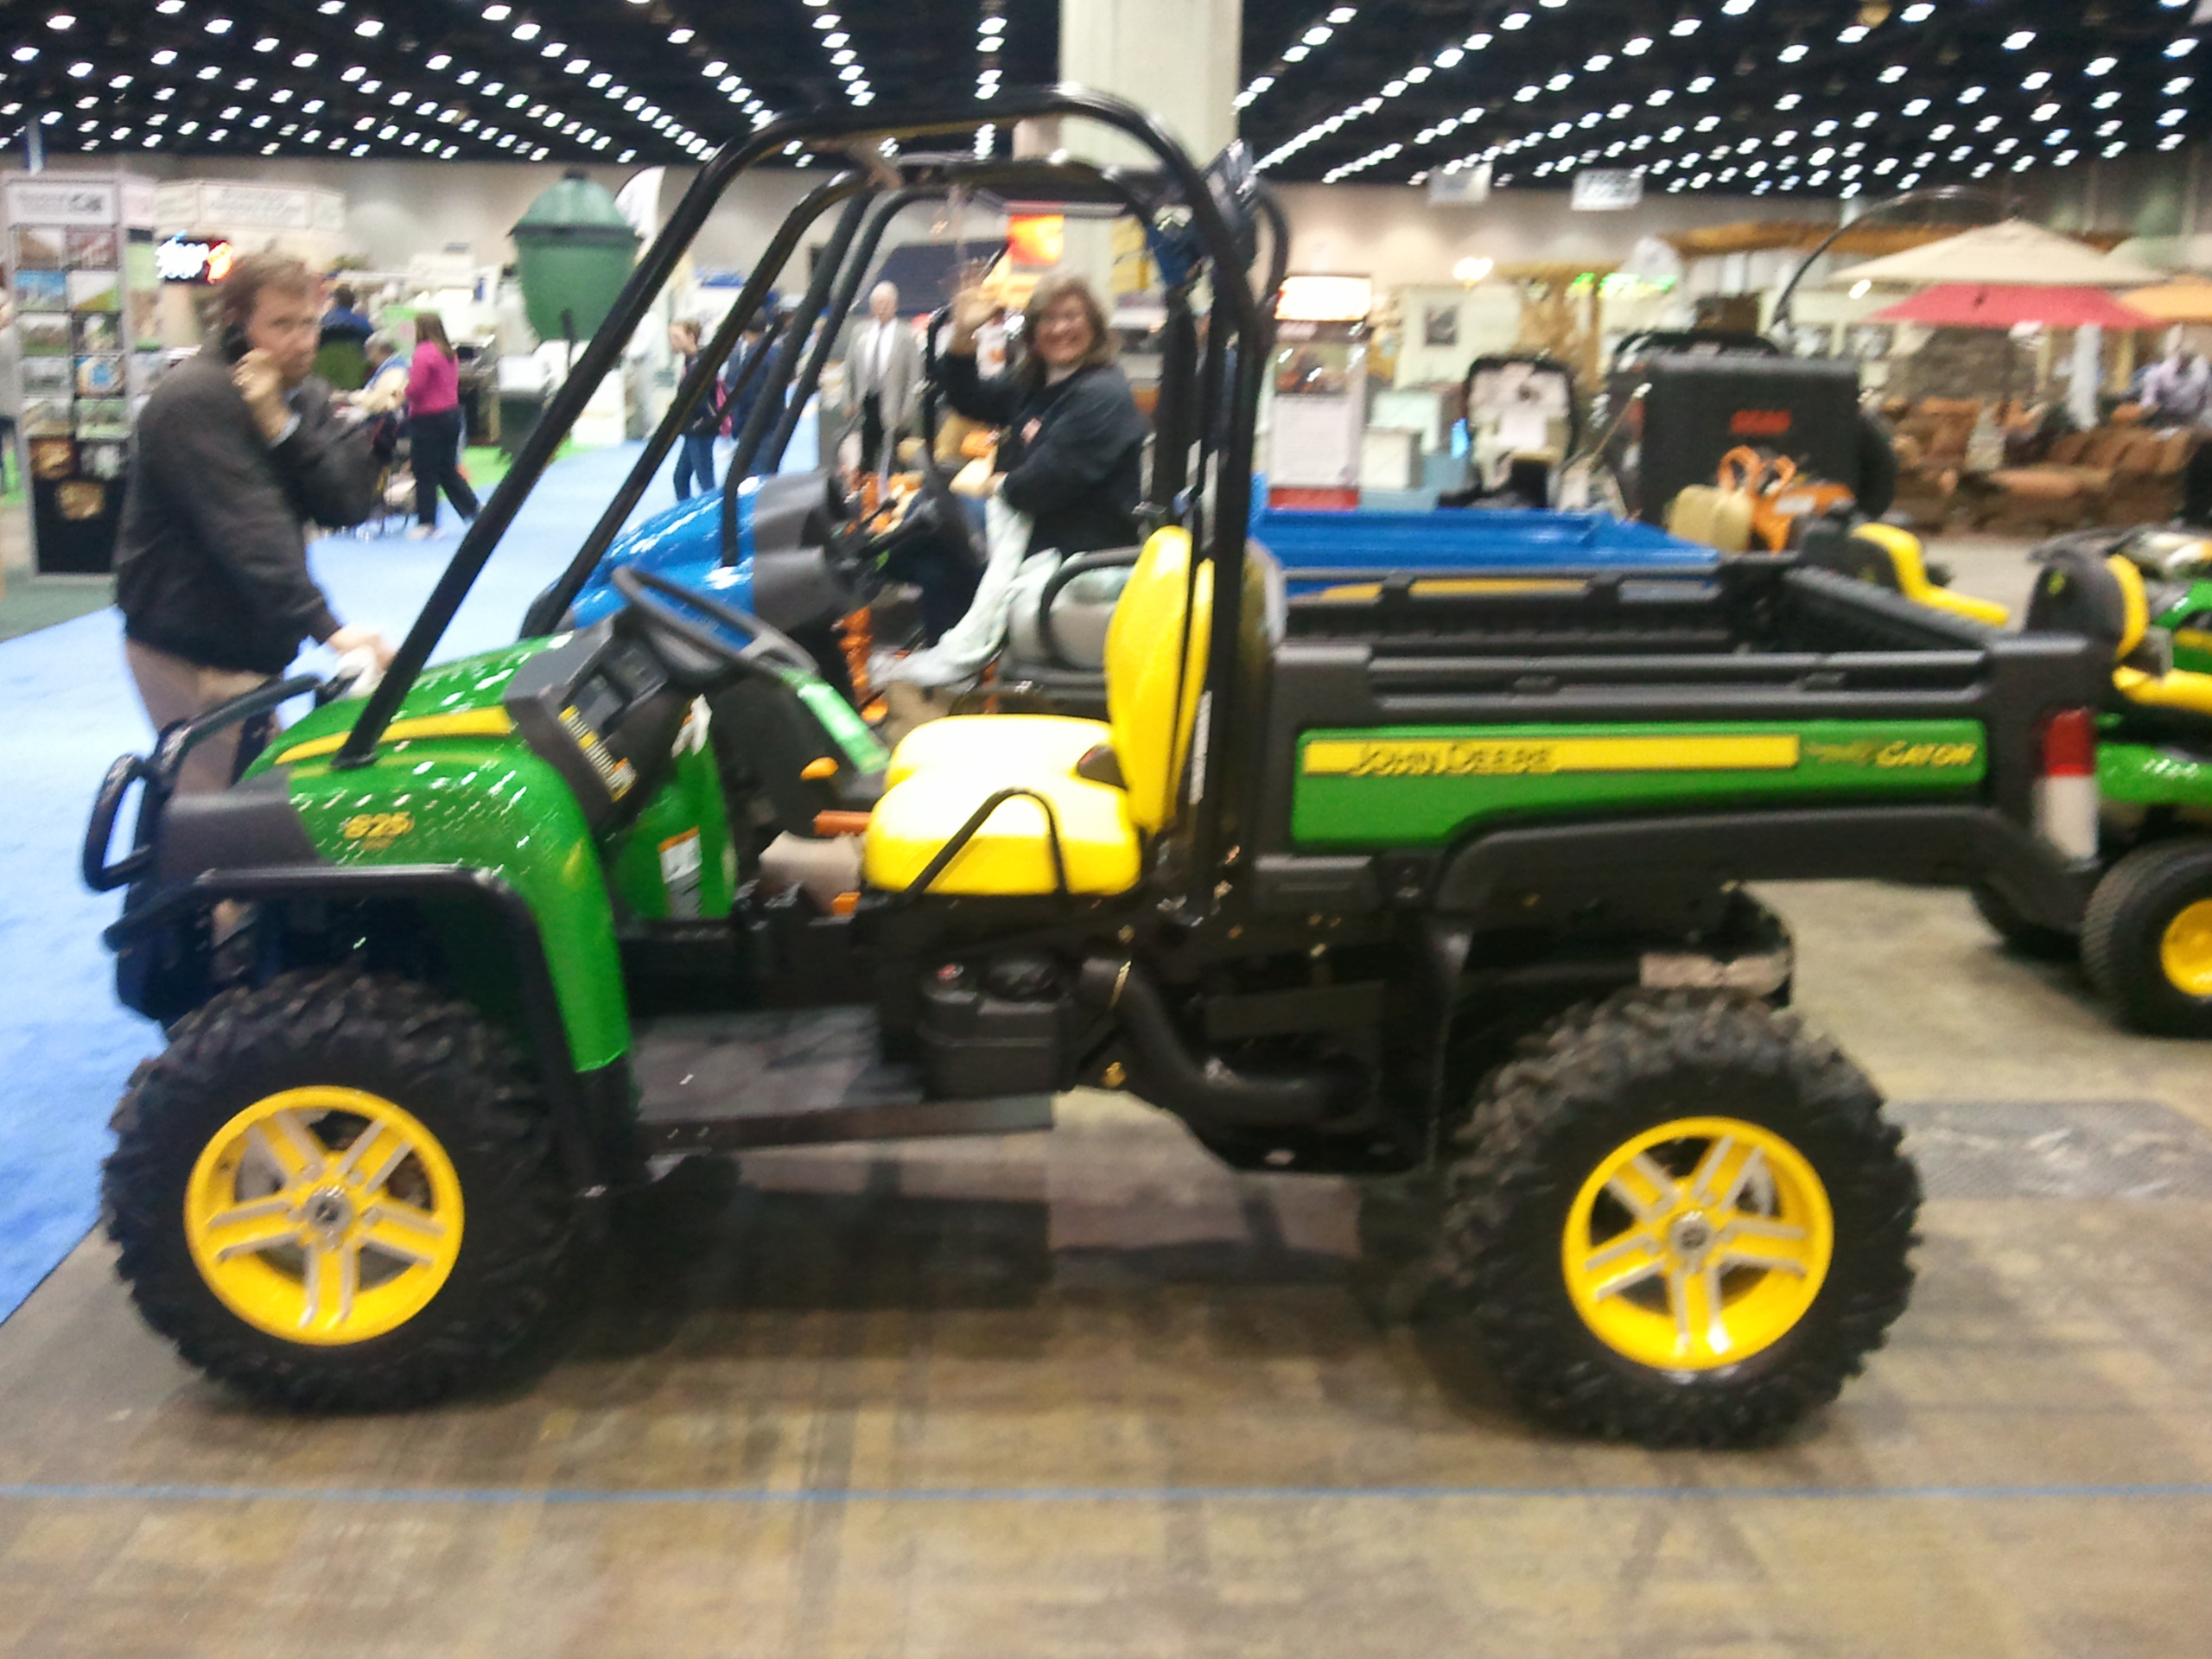 John Deere Gator Xuv 825i At Louisville Home Garden Show HD Wallpapers Download free images and photos [musssic.tk]